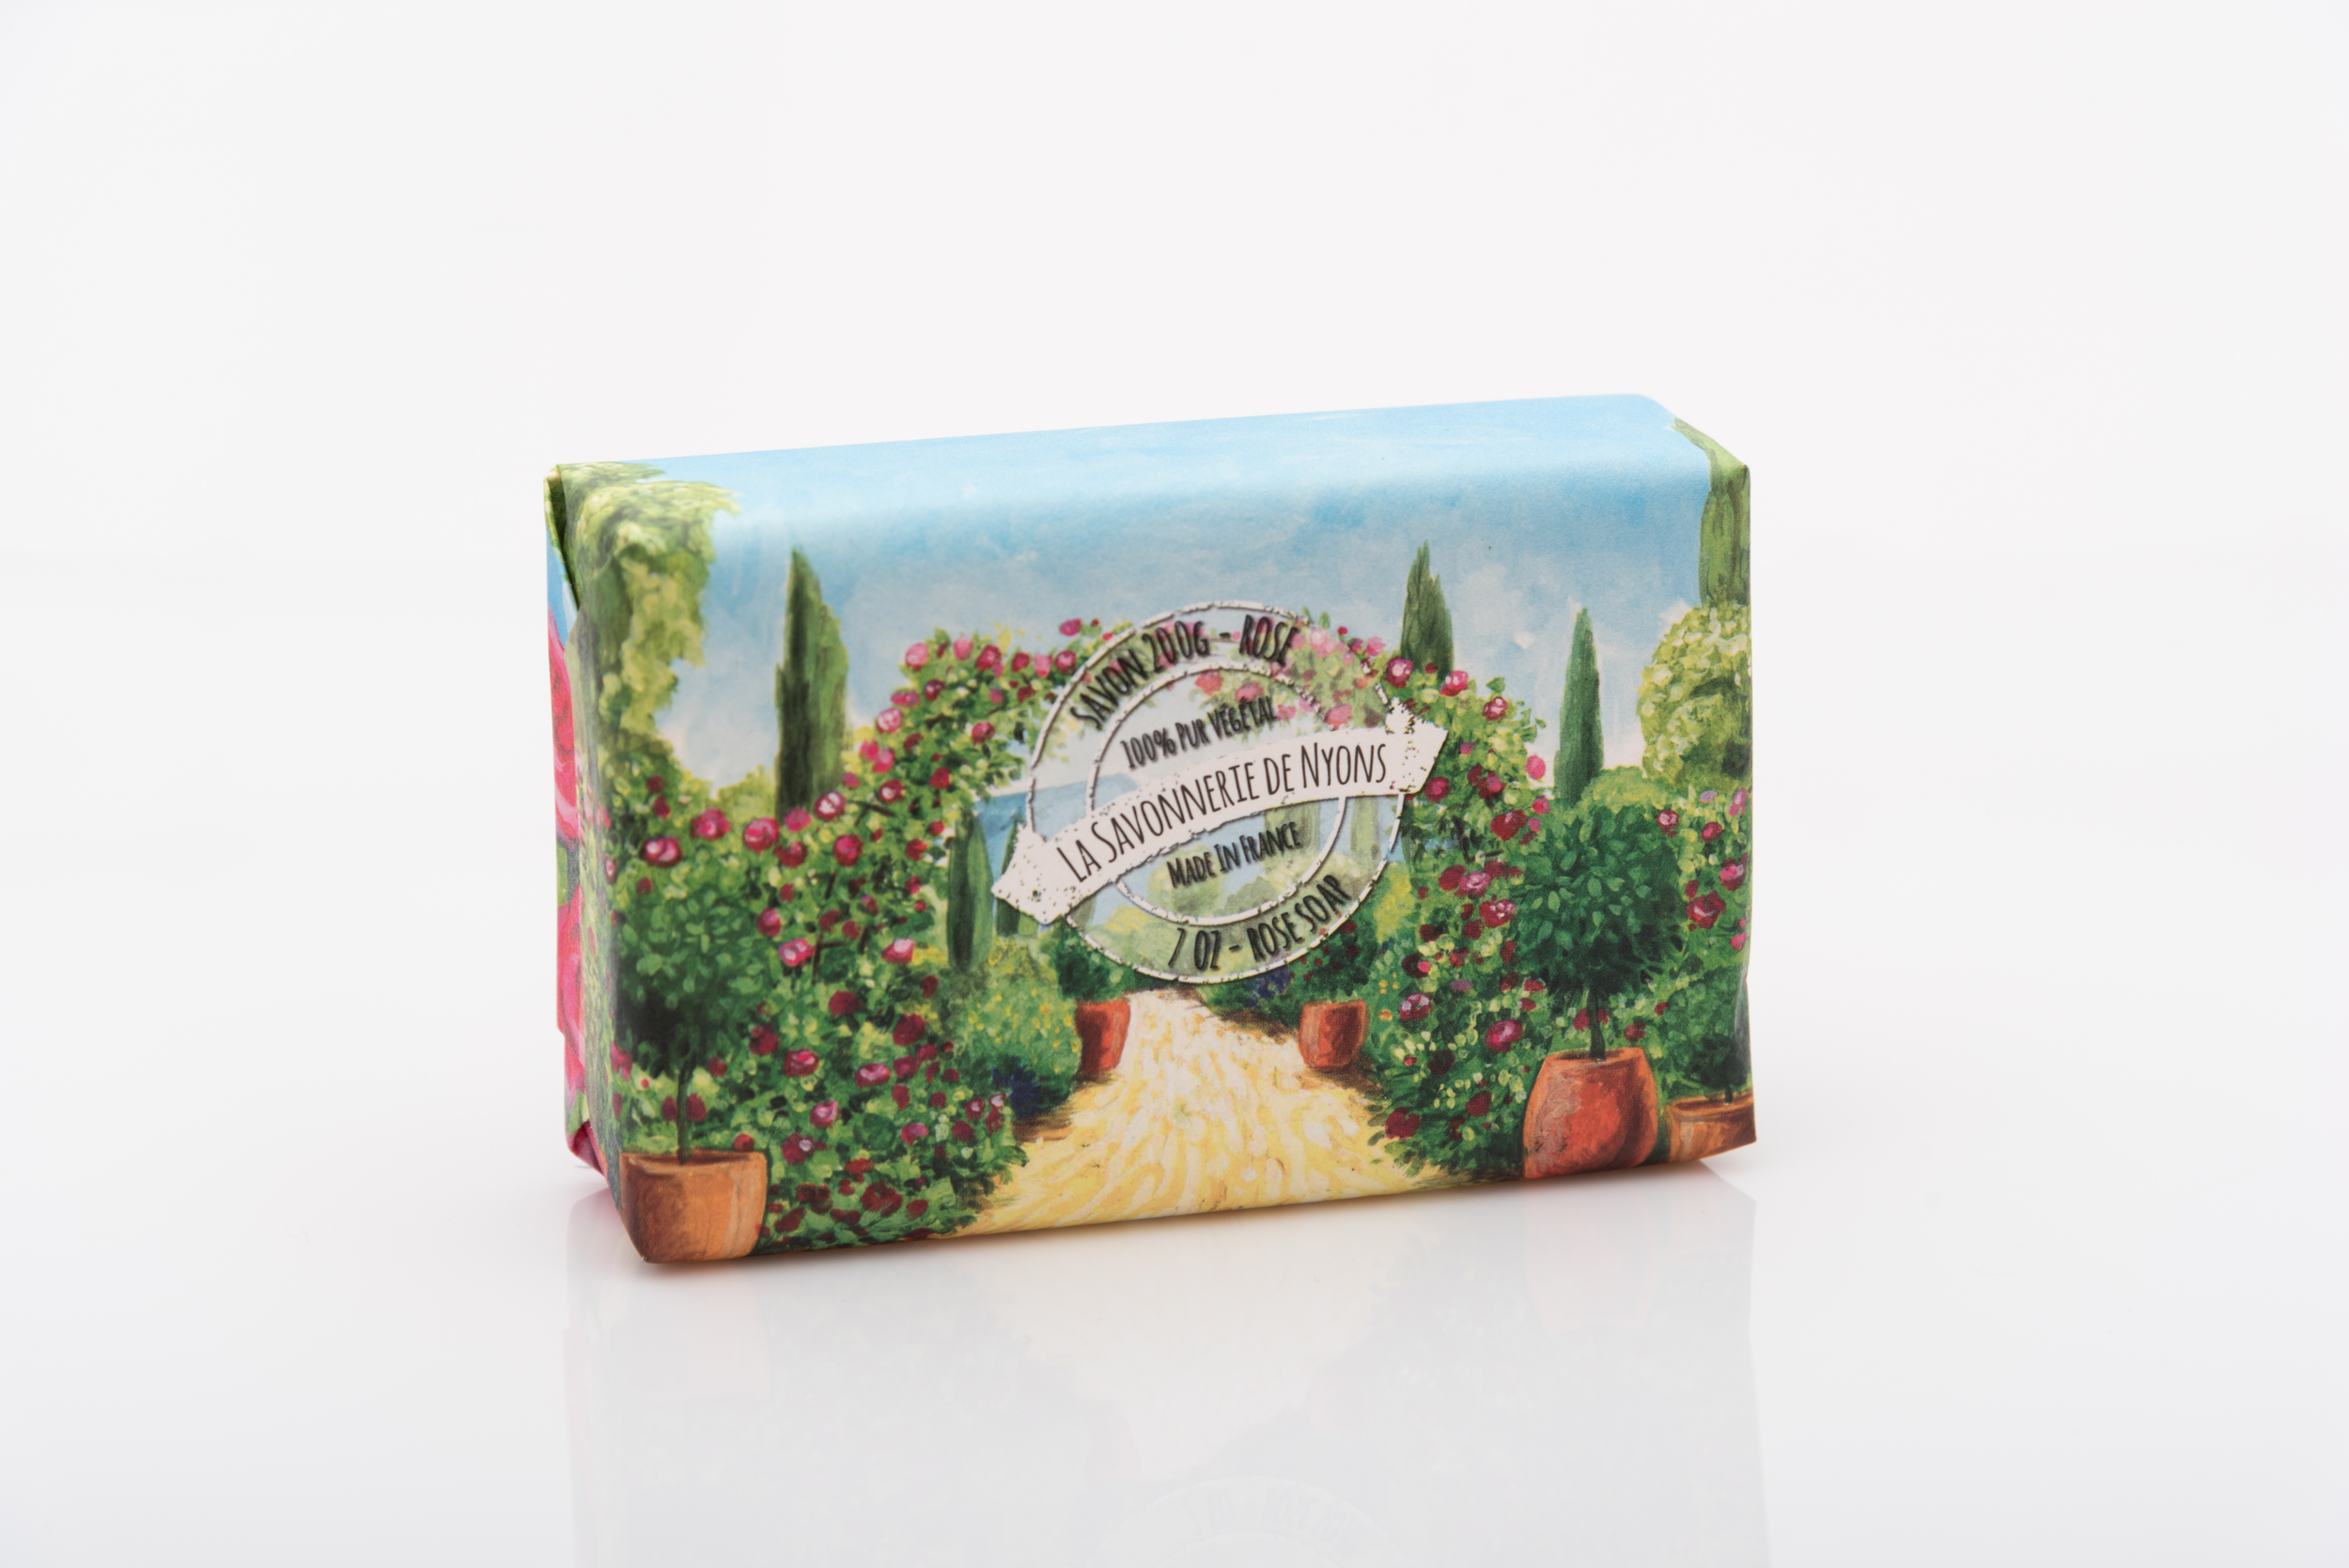 SAVON DE NYONS  VEGETAL A LA ROSE MADE IN FRANCE 200 GRAMMES EMBALLAGE PAPIER